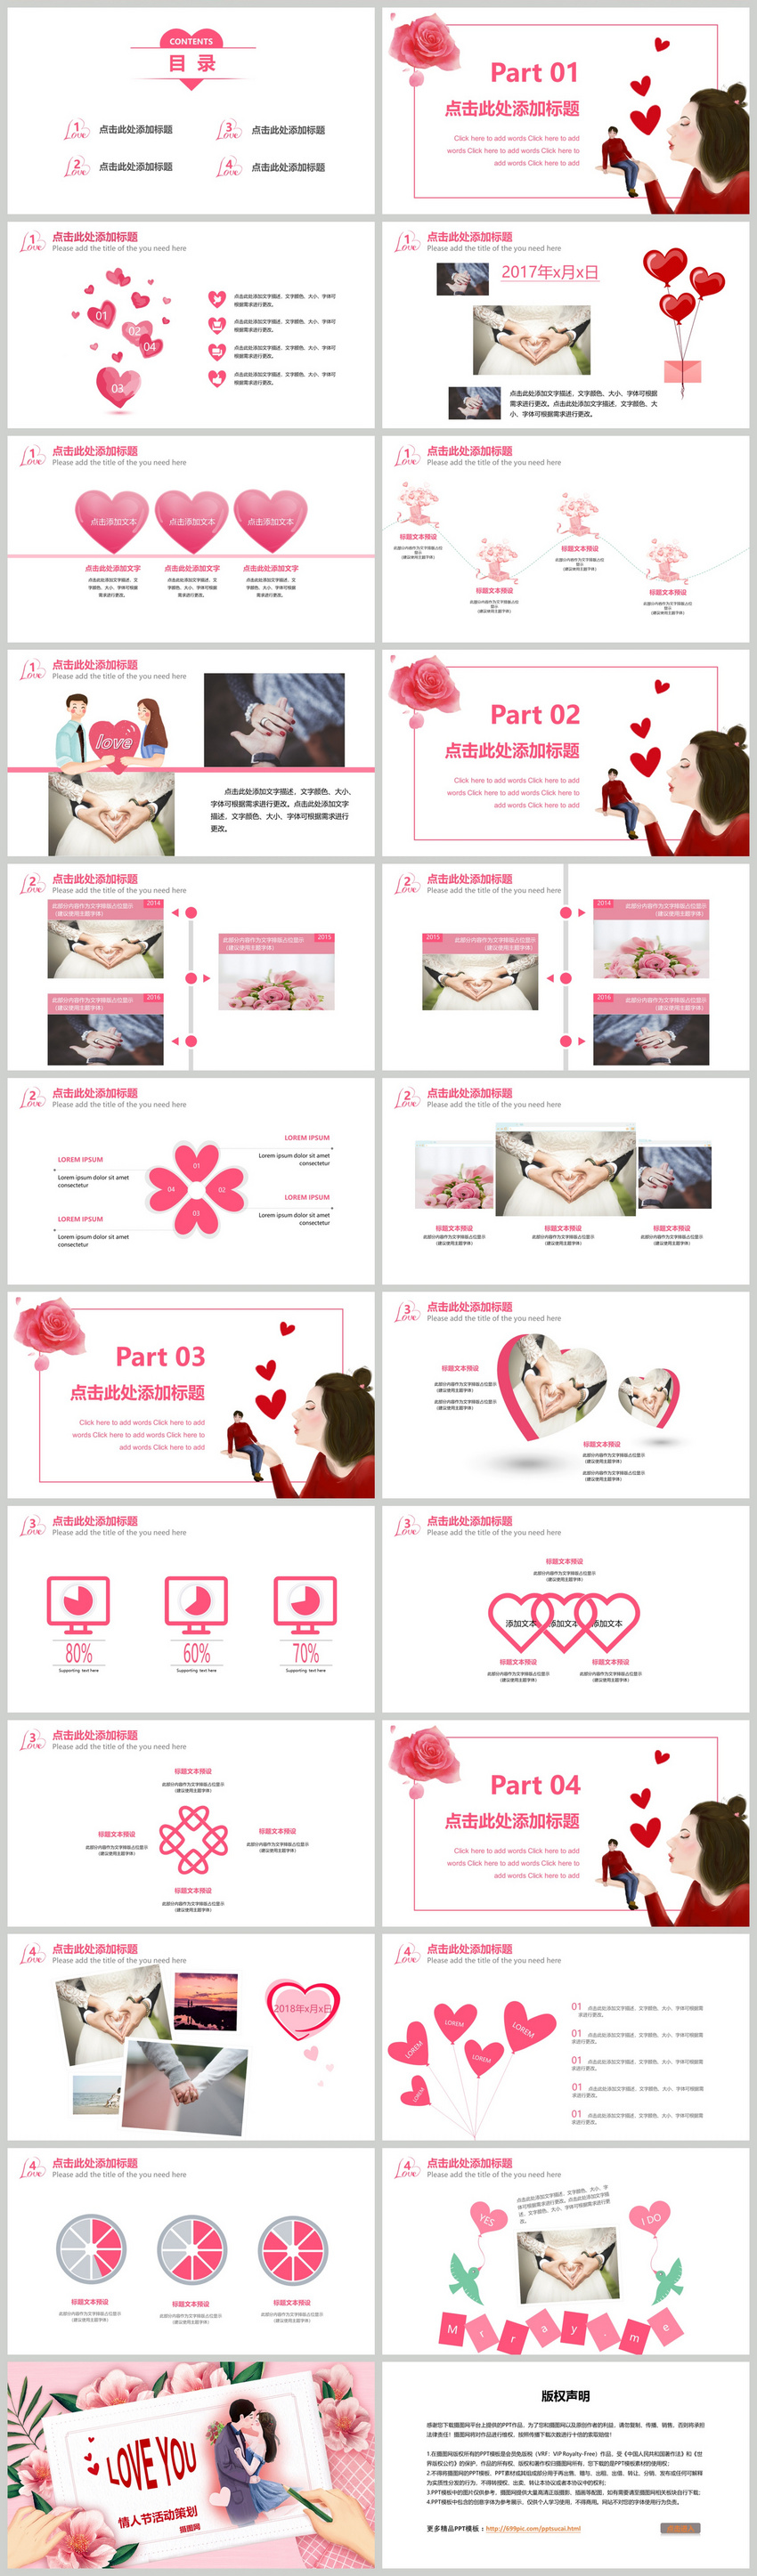 valentines day activities plan romantic cartoon pink ppt templa